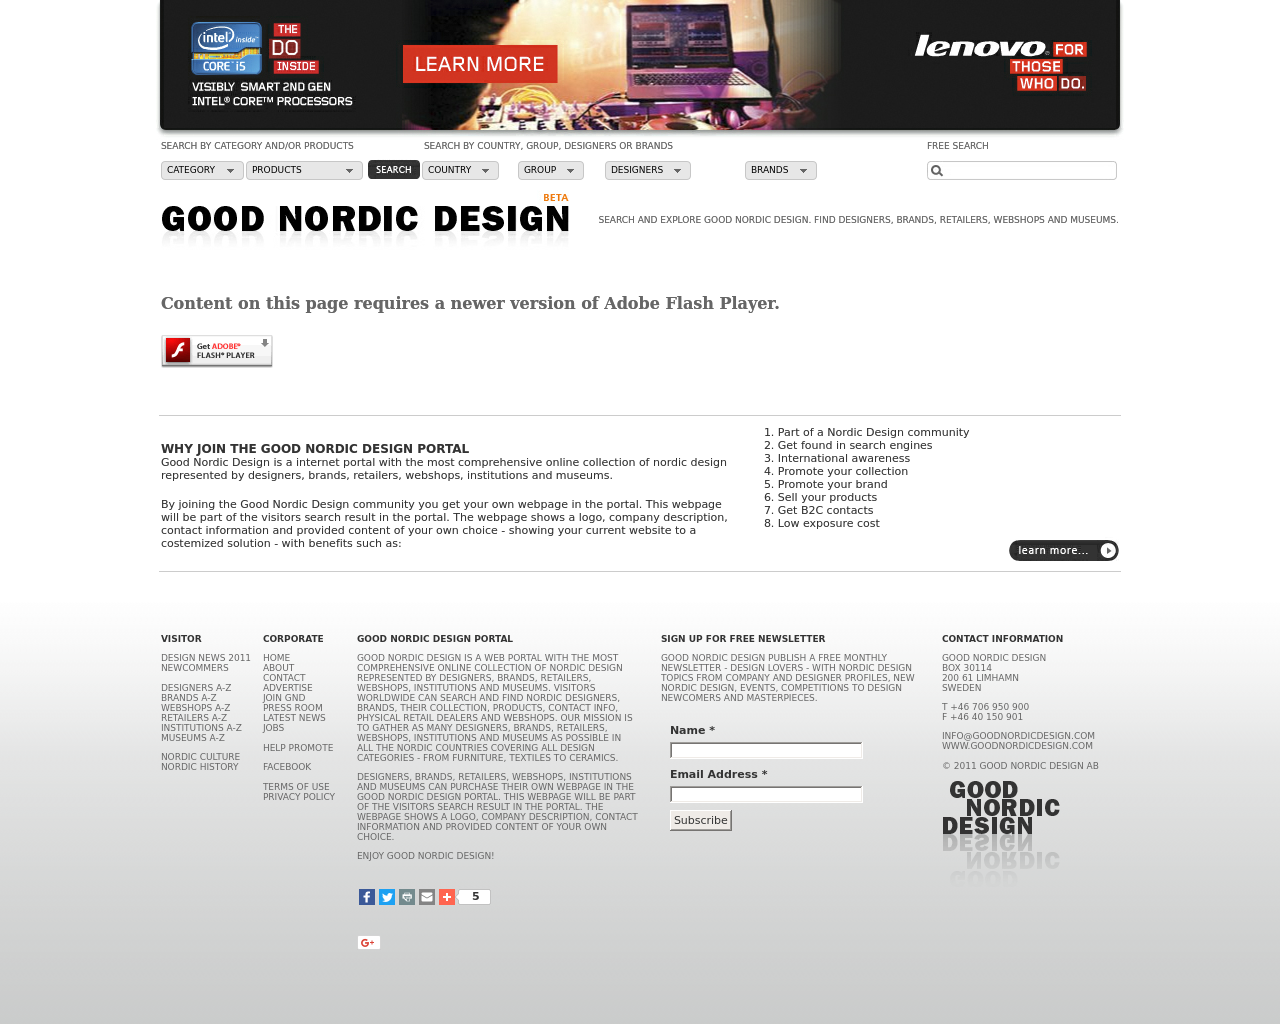 Good-Nordic-Design-Advertising-Reviews-Pricing